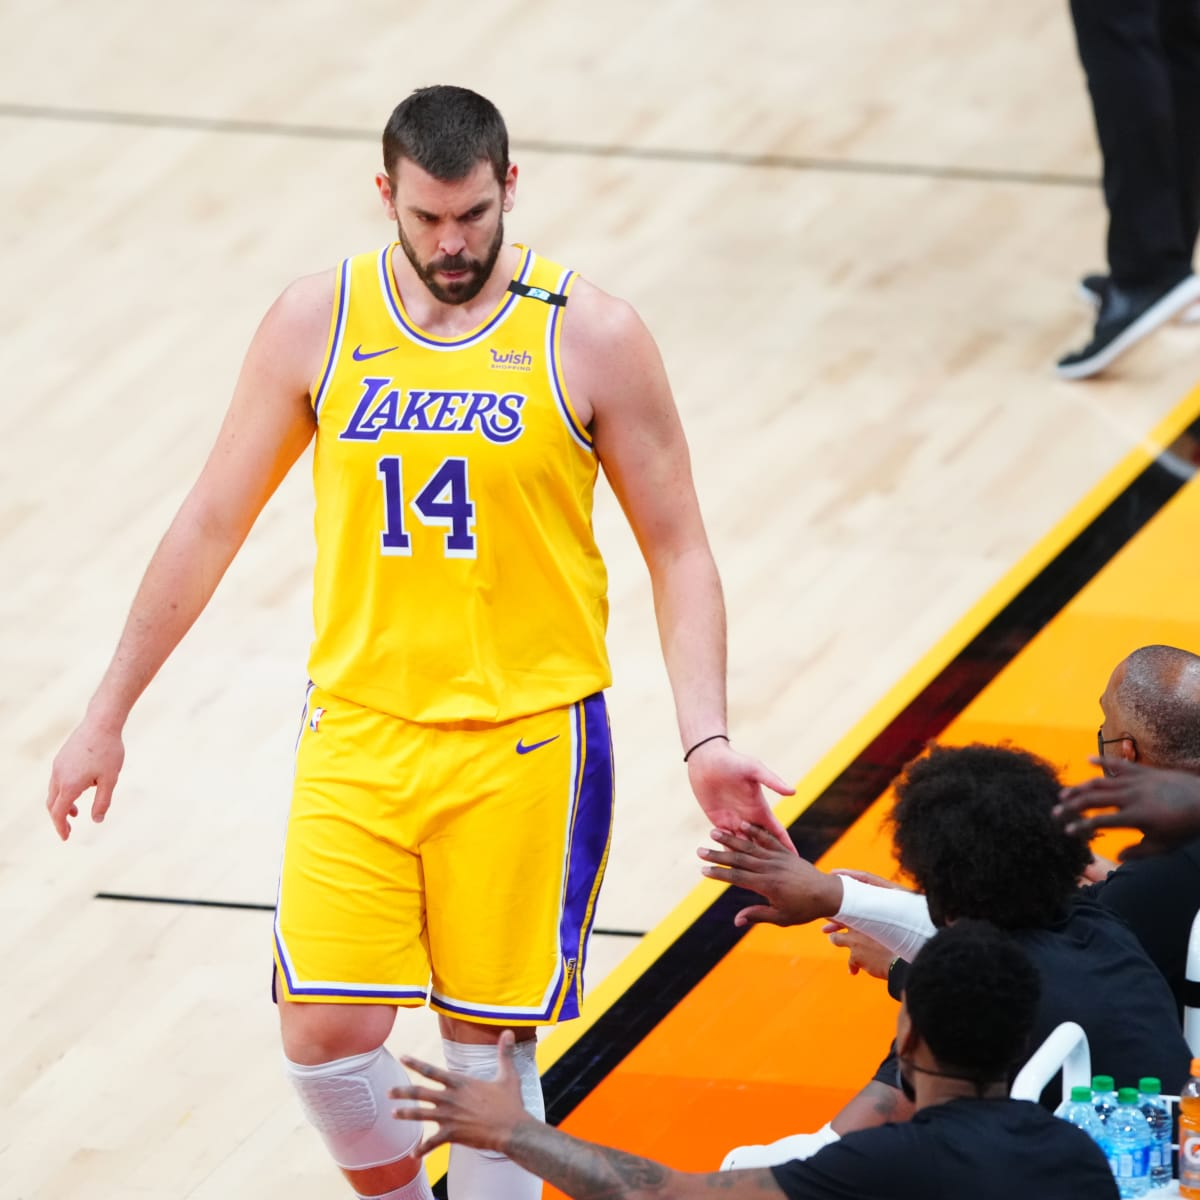 Lakers News: Is Marc Gasol's Time in LA Coming to an End? - Sports ...